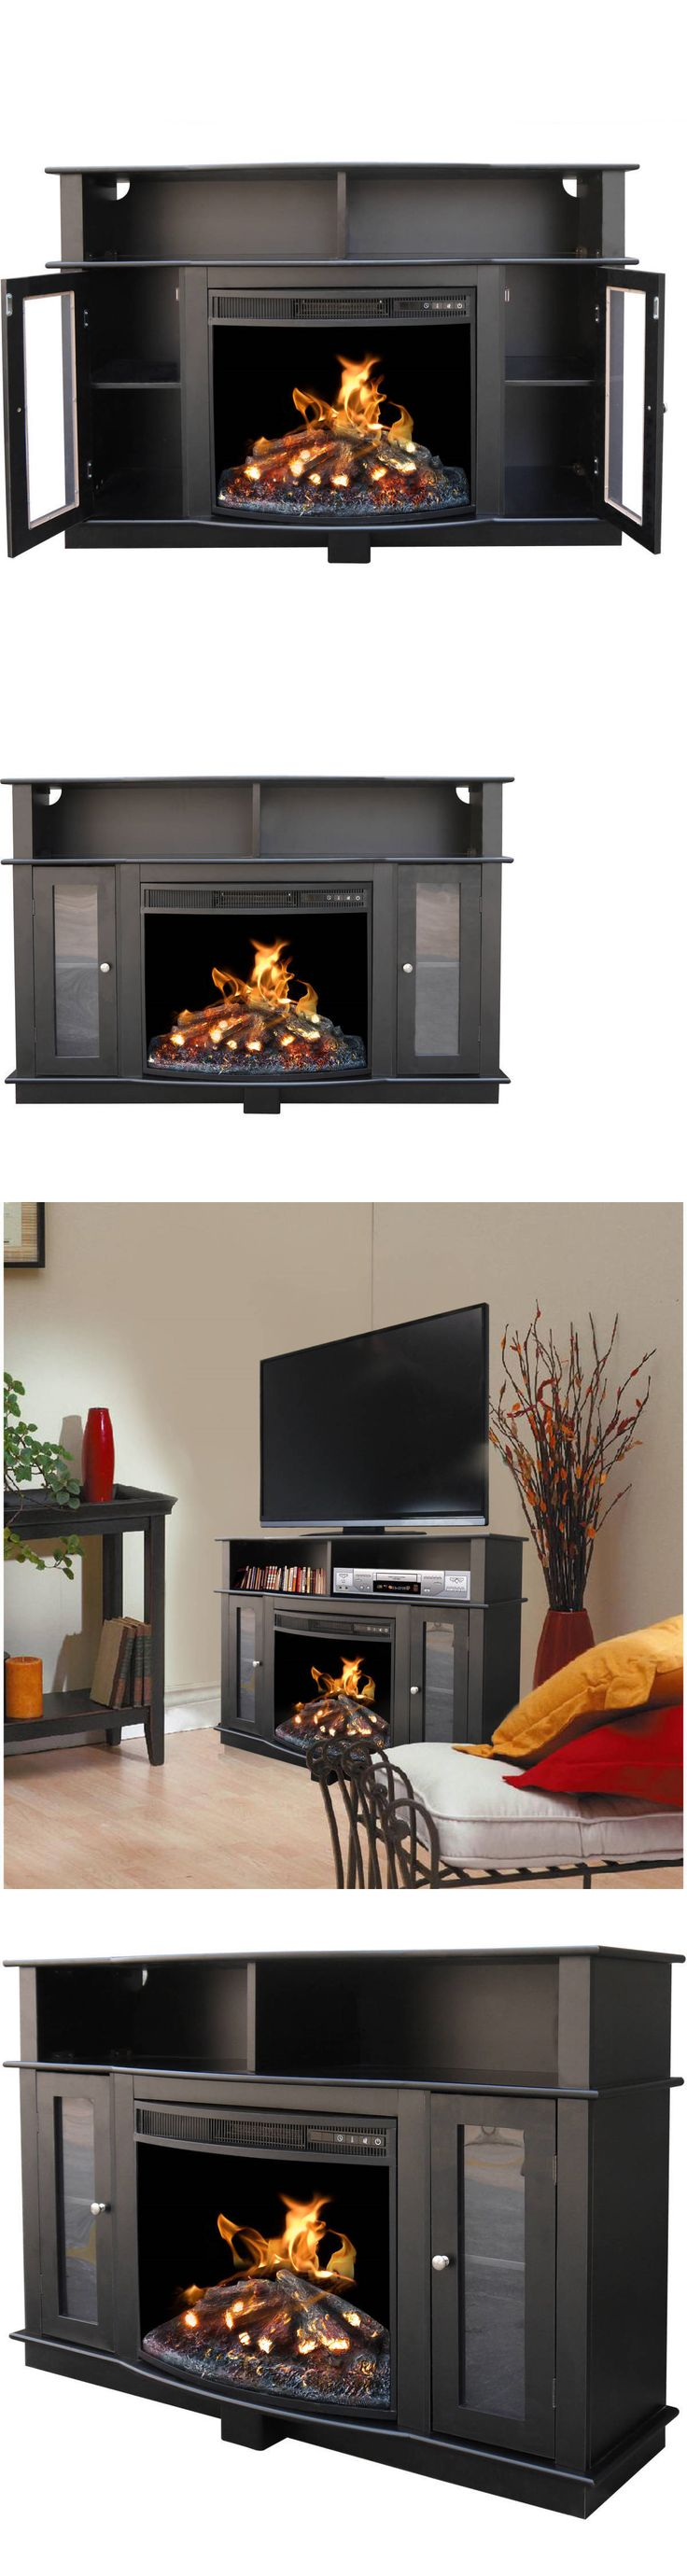 Entertainment Units TV Stands: Tv Stand Entertainment Center Media Console Shelves Electric Fireplace Black New -> BUY IT NOW ONLY: $424.44 on eBay!